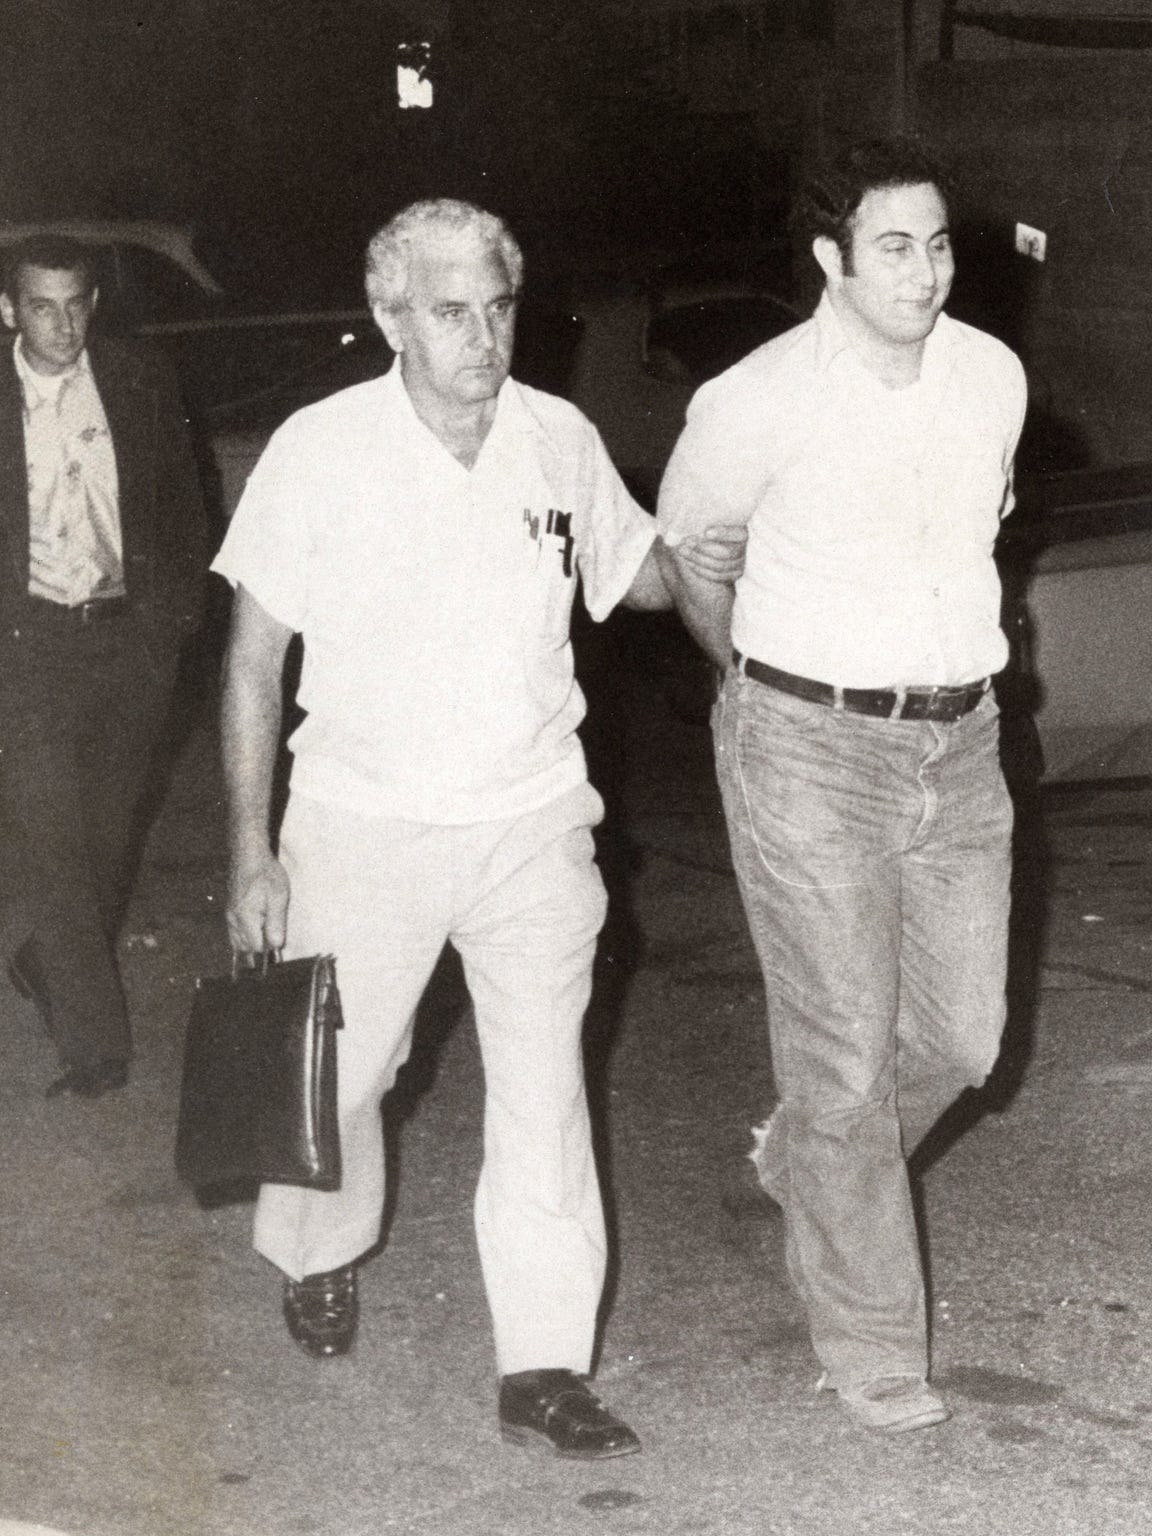 David Berkowitz, who terrorized New York City in 1976-77